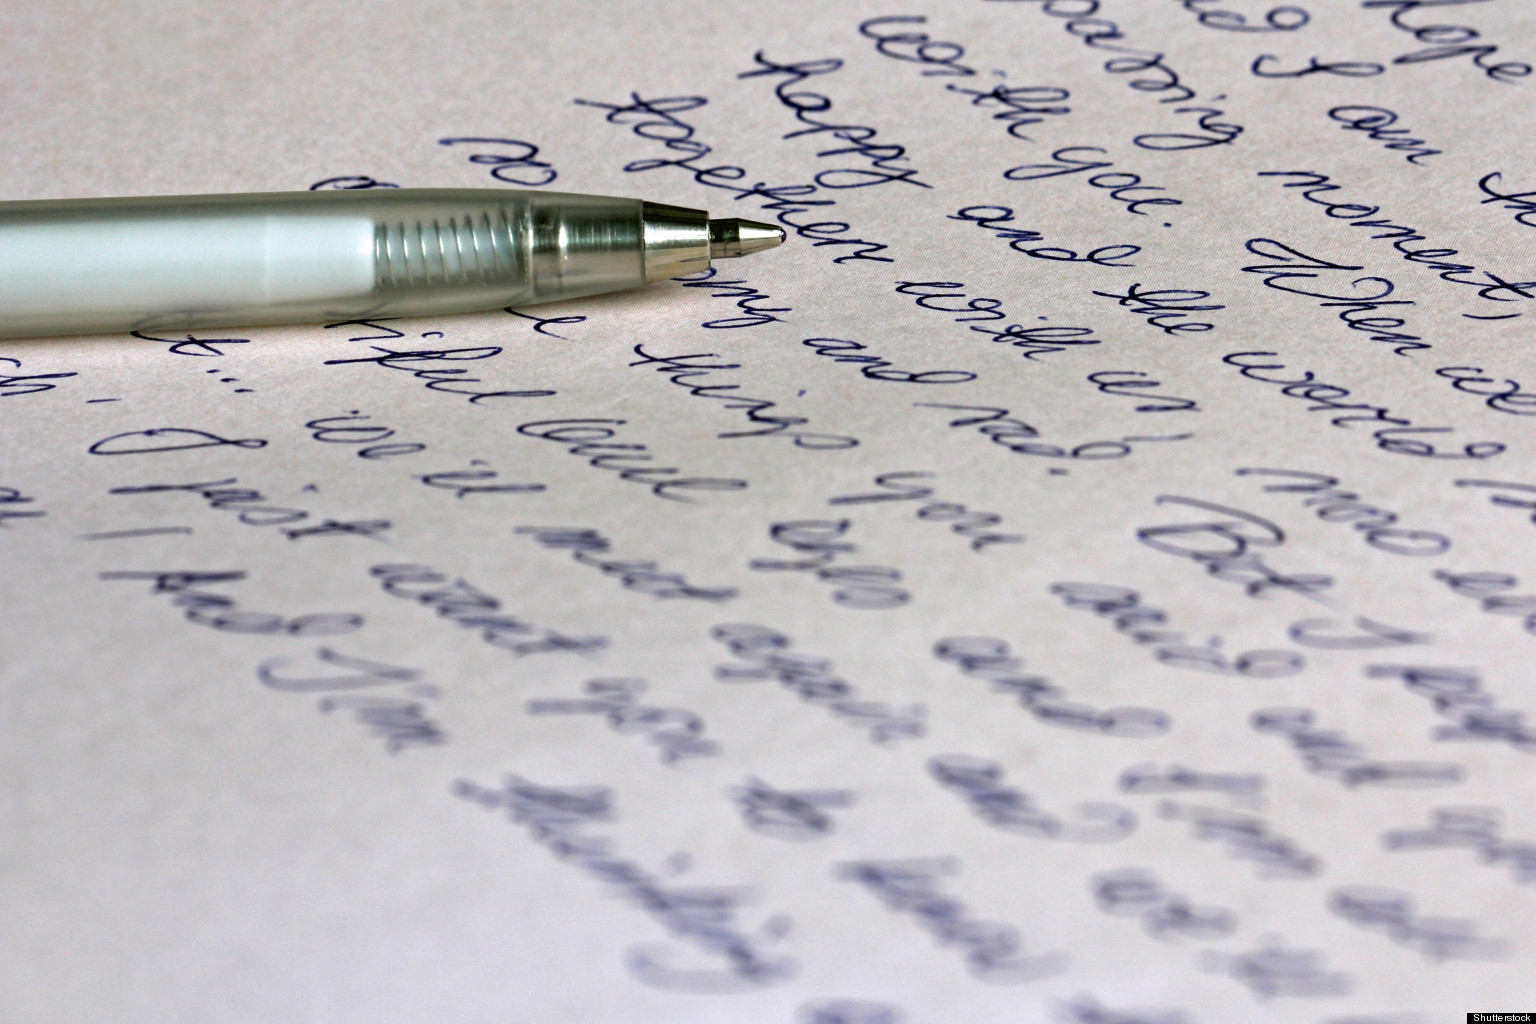 Valentineu0027s Special: 10 Secret Love Letters To The Ones That Got Away |  HuffPost